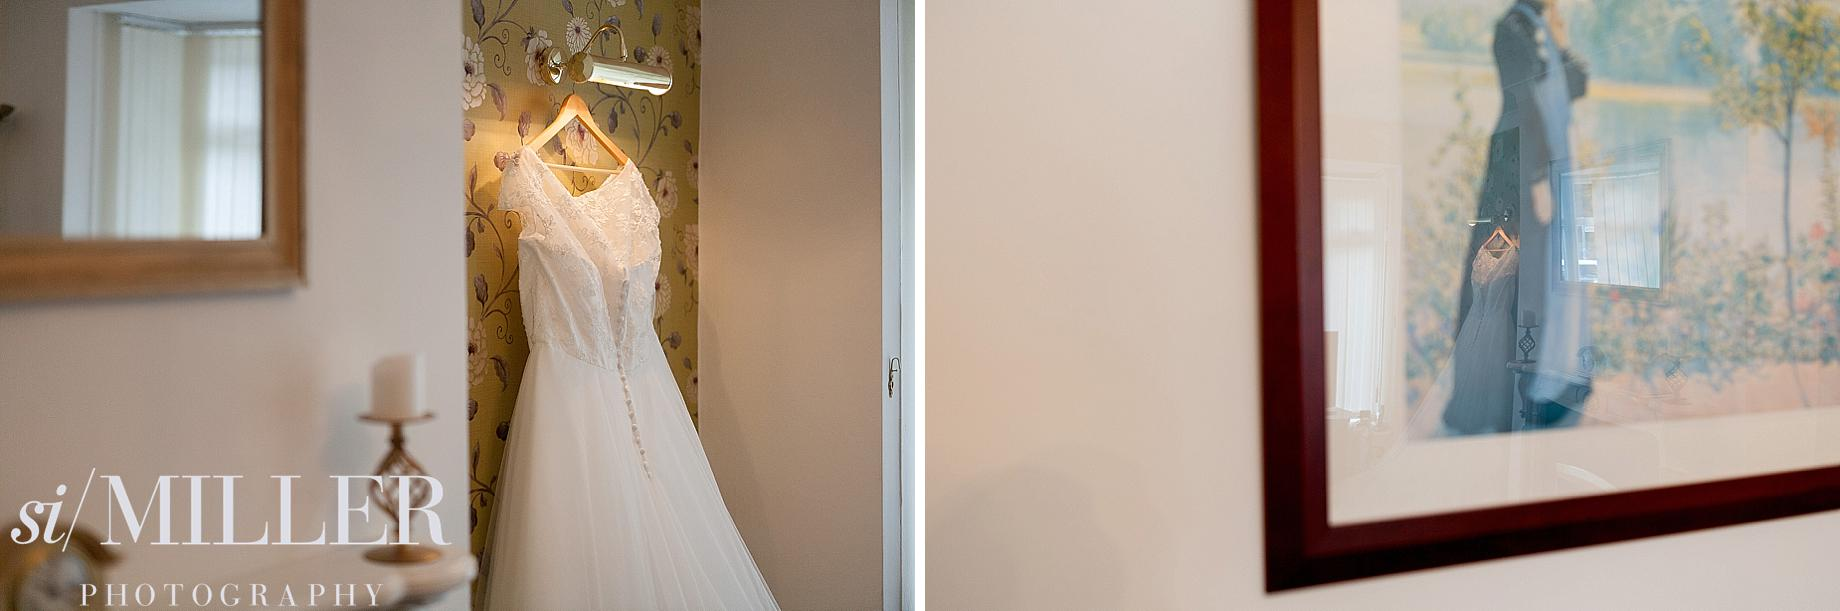 accrington Wedding photographer lancashire wedding dress